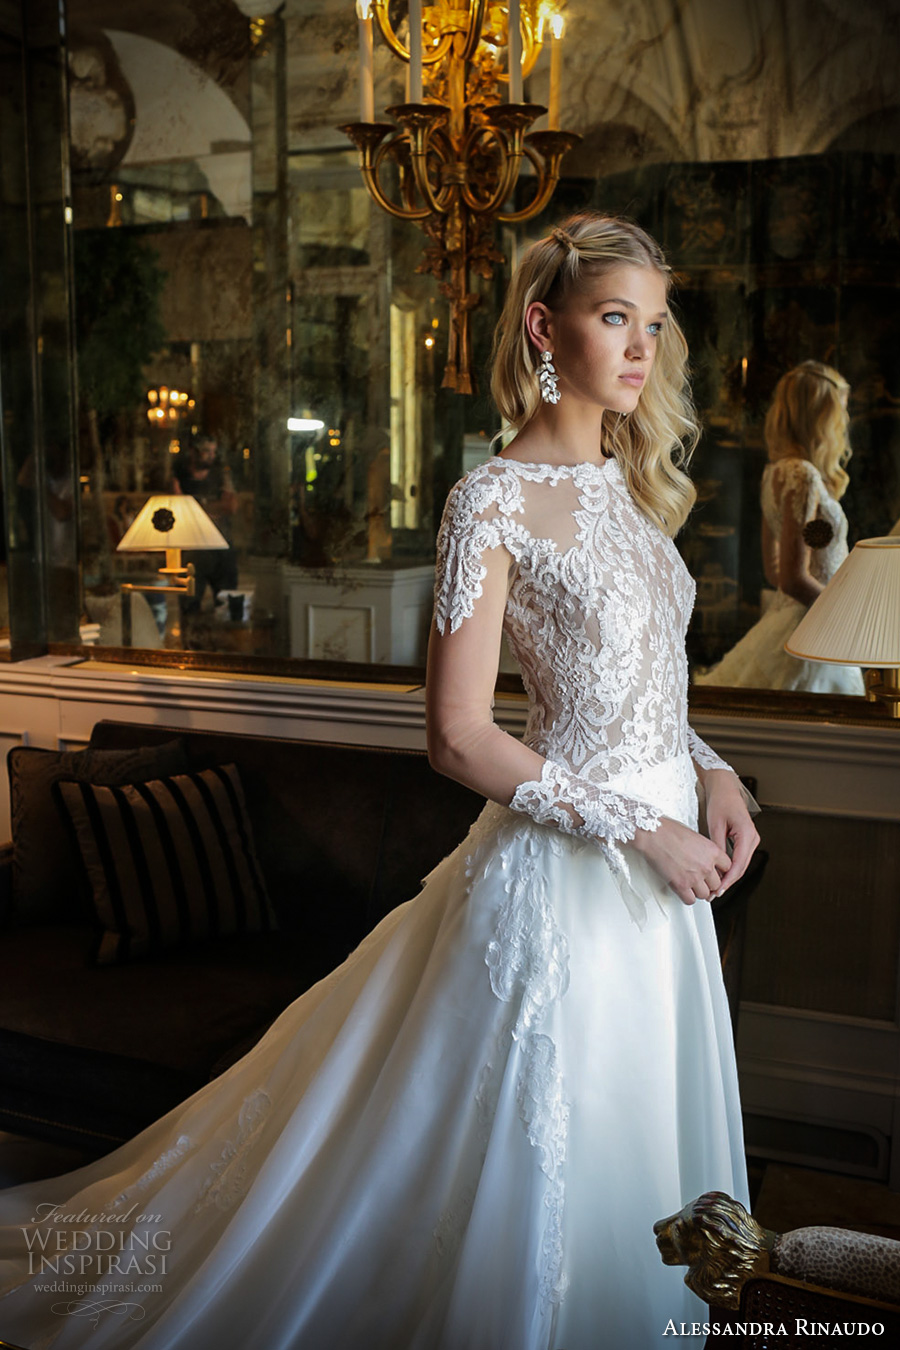 alessandra rinaudo 2017 bridal long sleeves round neck lace heavily embellished bodice drop waist elegant a line wedding dress lace back long train (29) zv